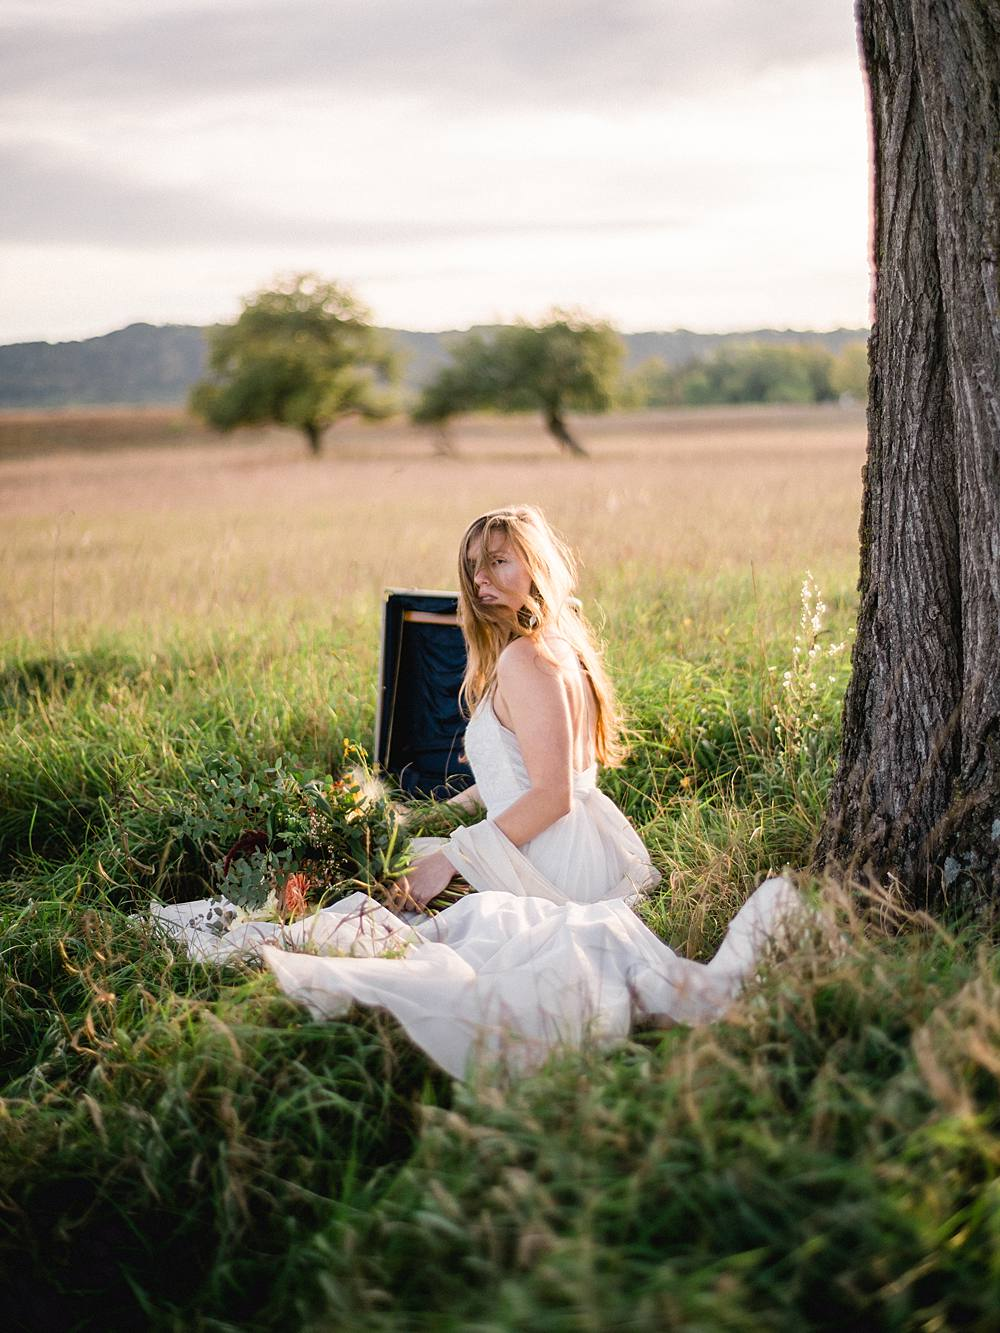 northern michigan bride in a field photographed by michigan wedding photographer brian d smith photography on kodak film